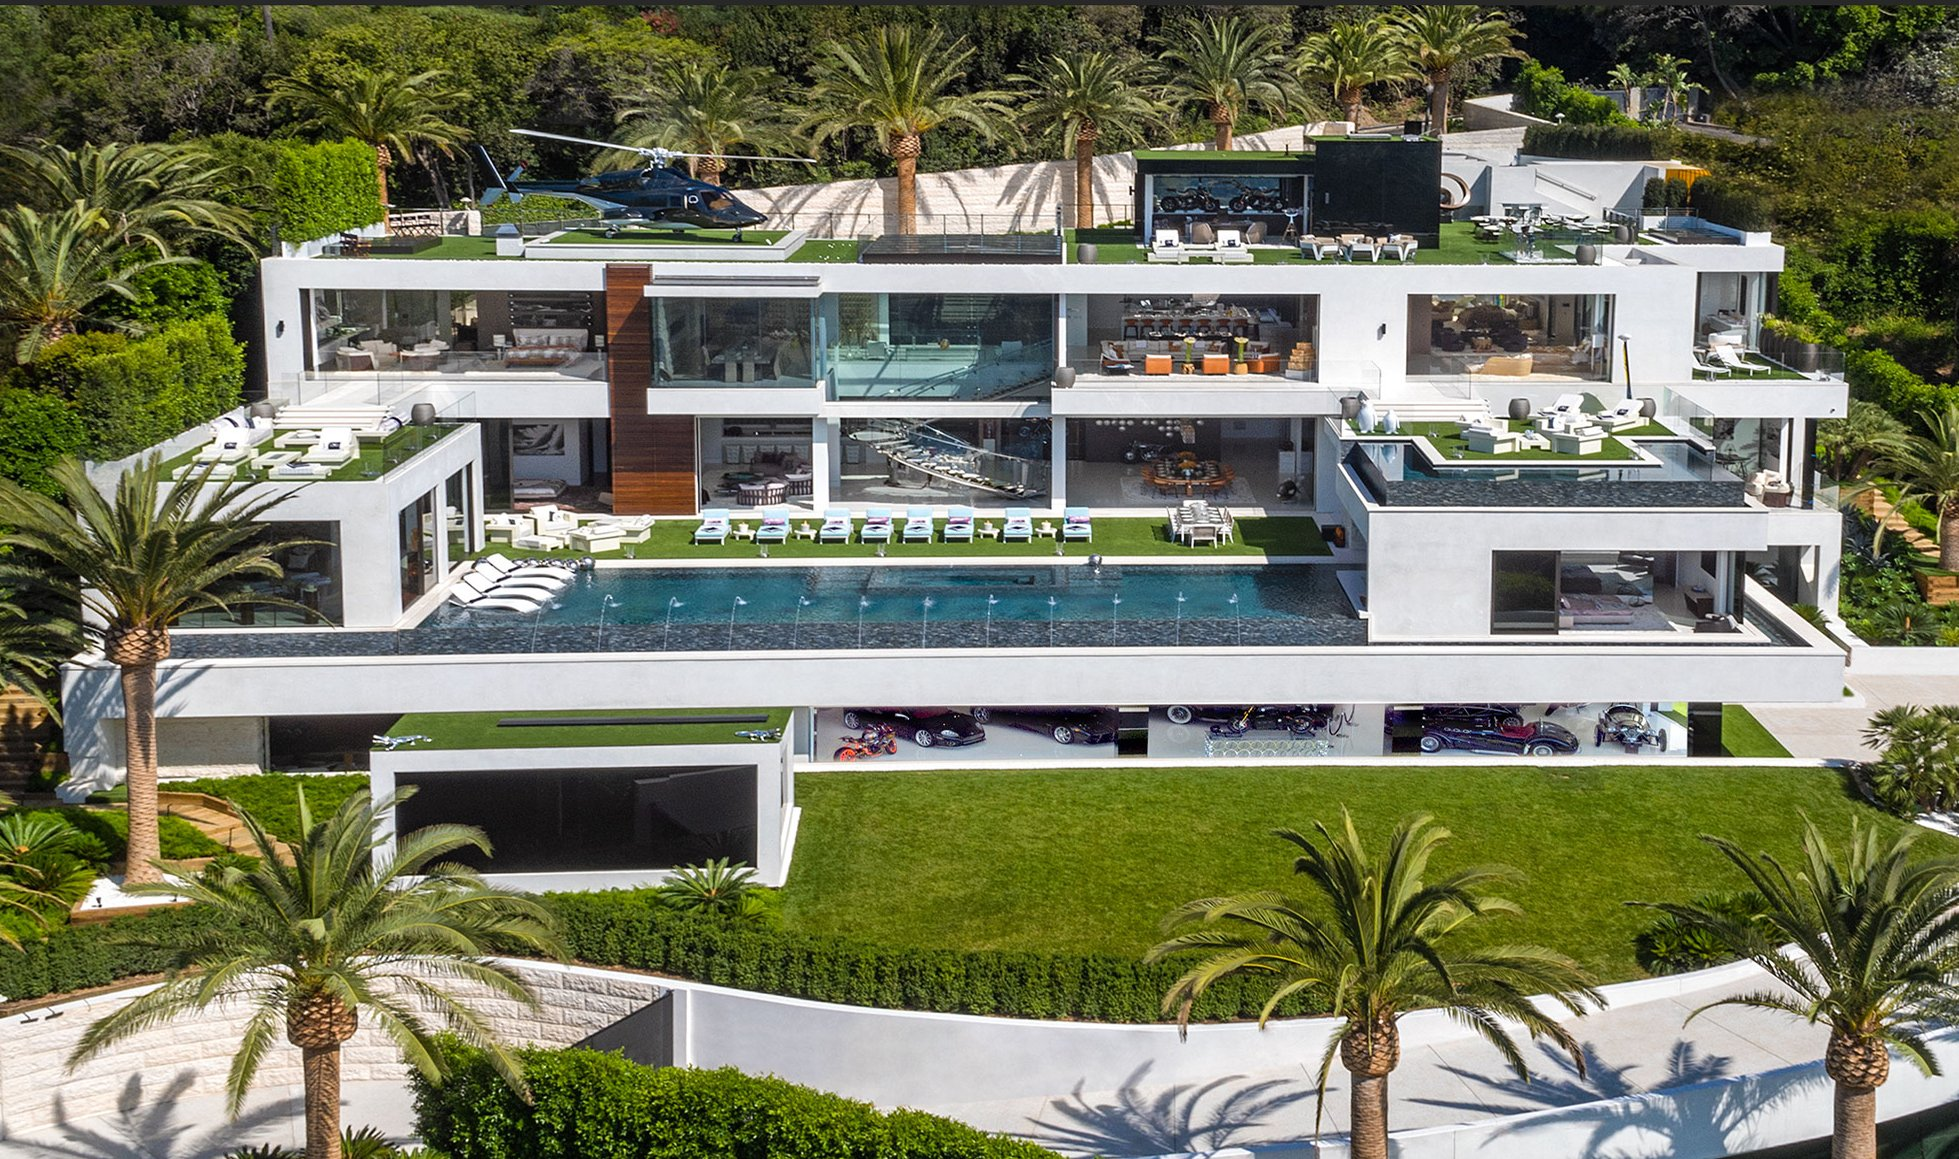 Tour America's Most Expensive Home: A BelAir GiGa Mansion!